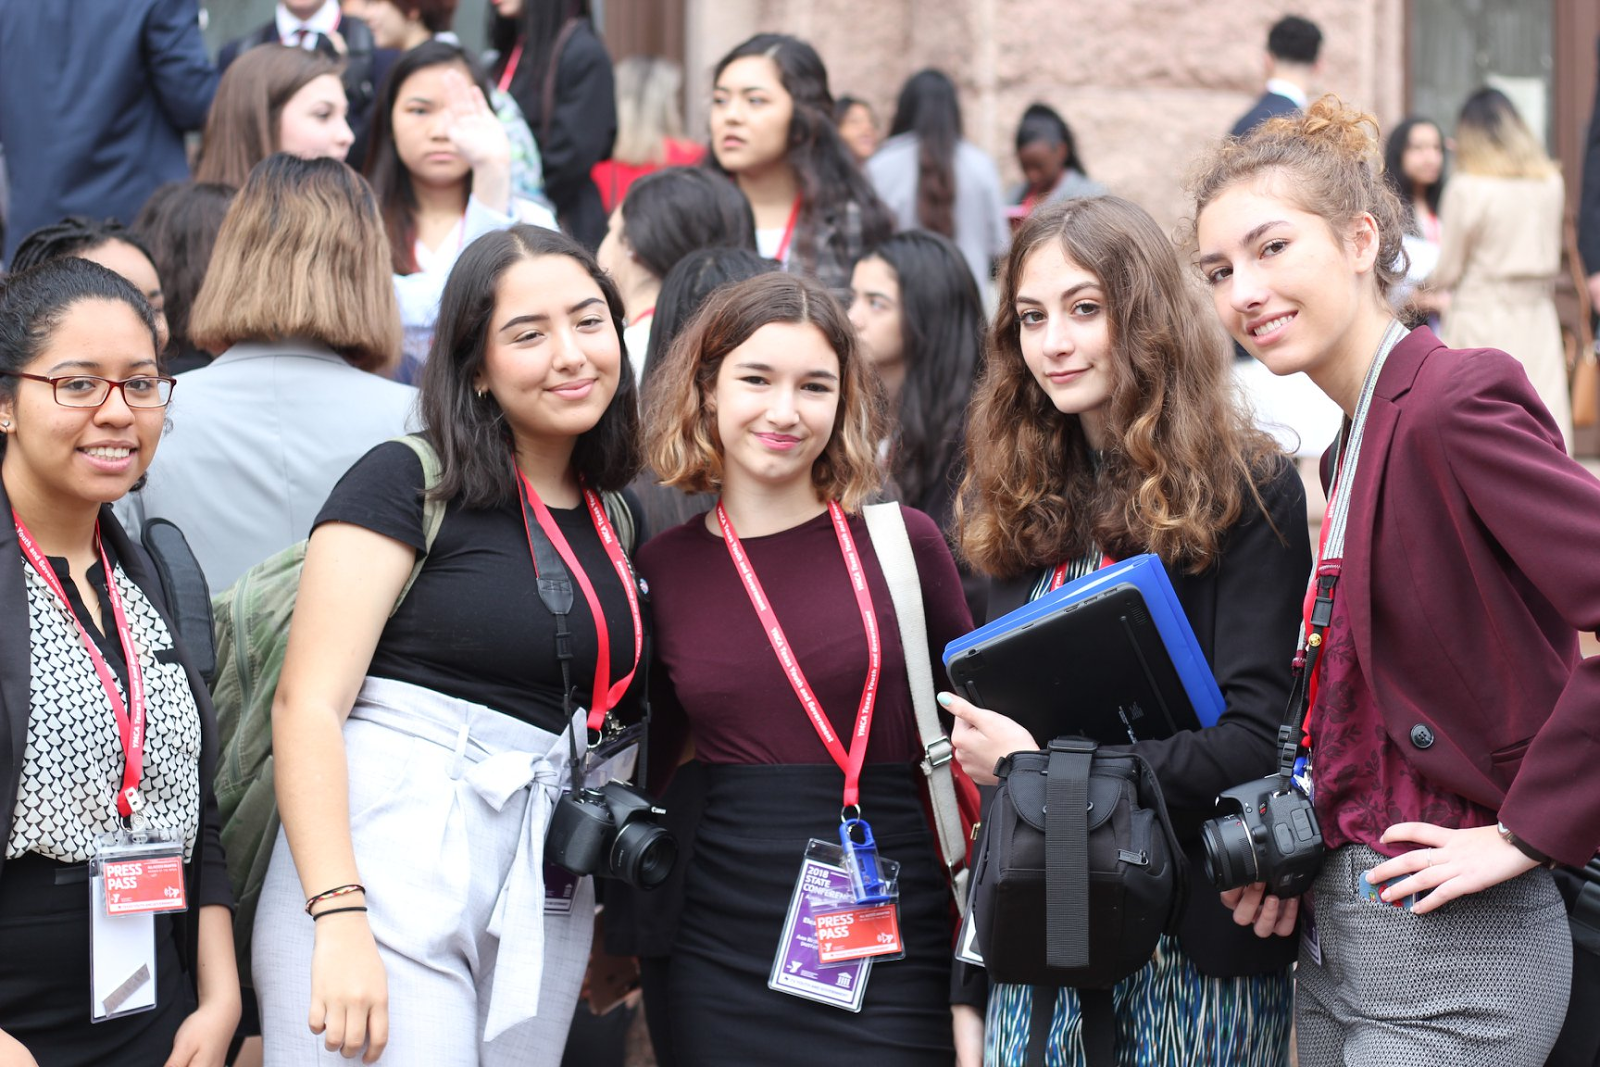 From left to right: Charlen Puon (10), Xiemena Sifuentes (10), Eleanor Jeansonne (10), Mia Clark (10), and Sierra Walton (12). Students pose for a picture during the second day of Youth and Government State Conference. All of these delegates worked in the media branch of government, which was divided into three sections: broadcast, social media, and print.  Photo by Becca Alonso.